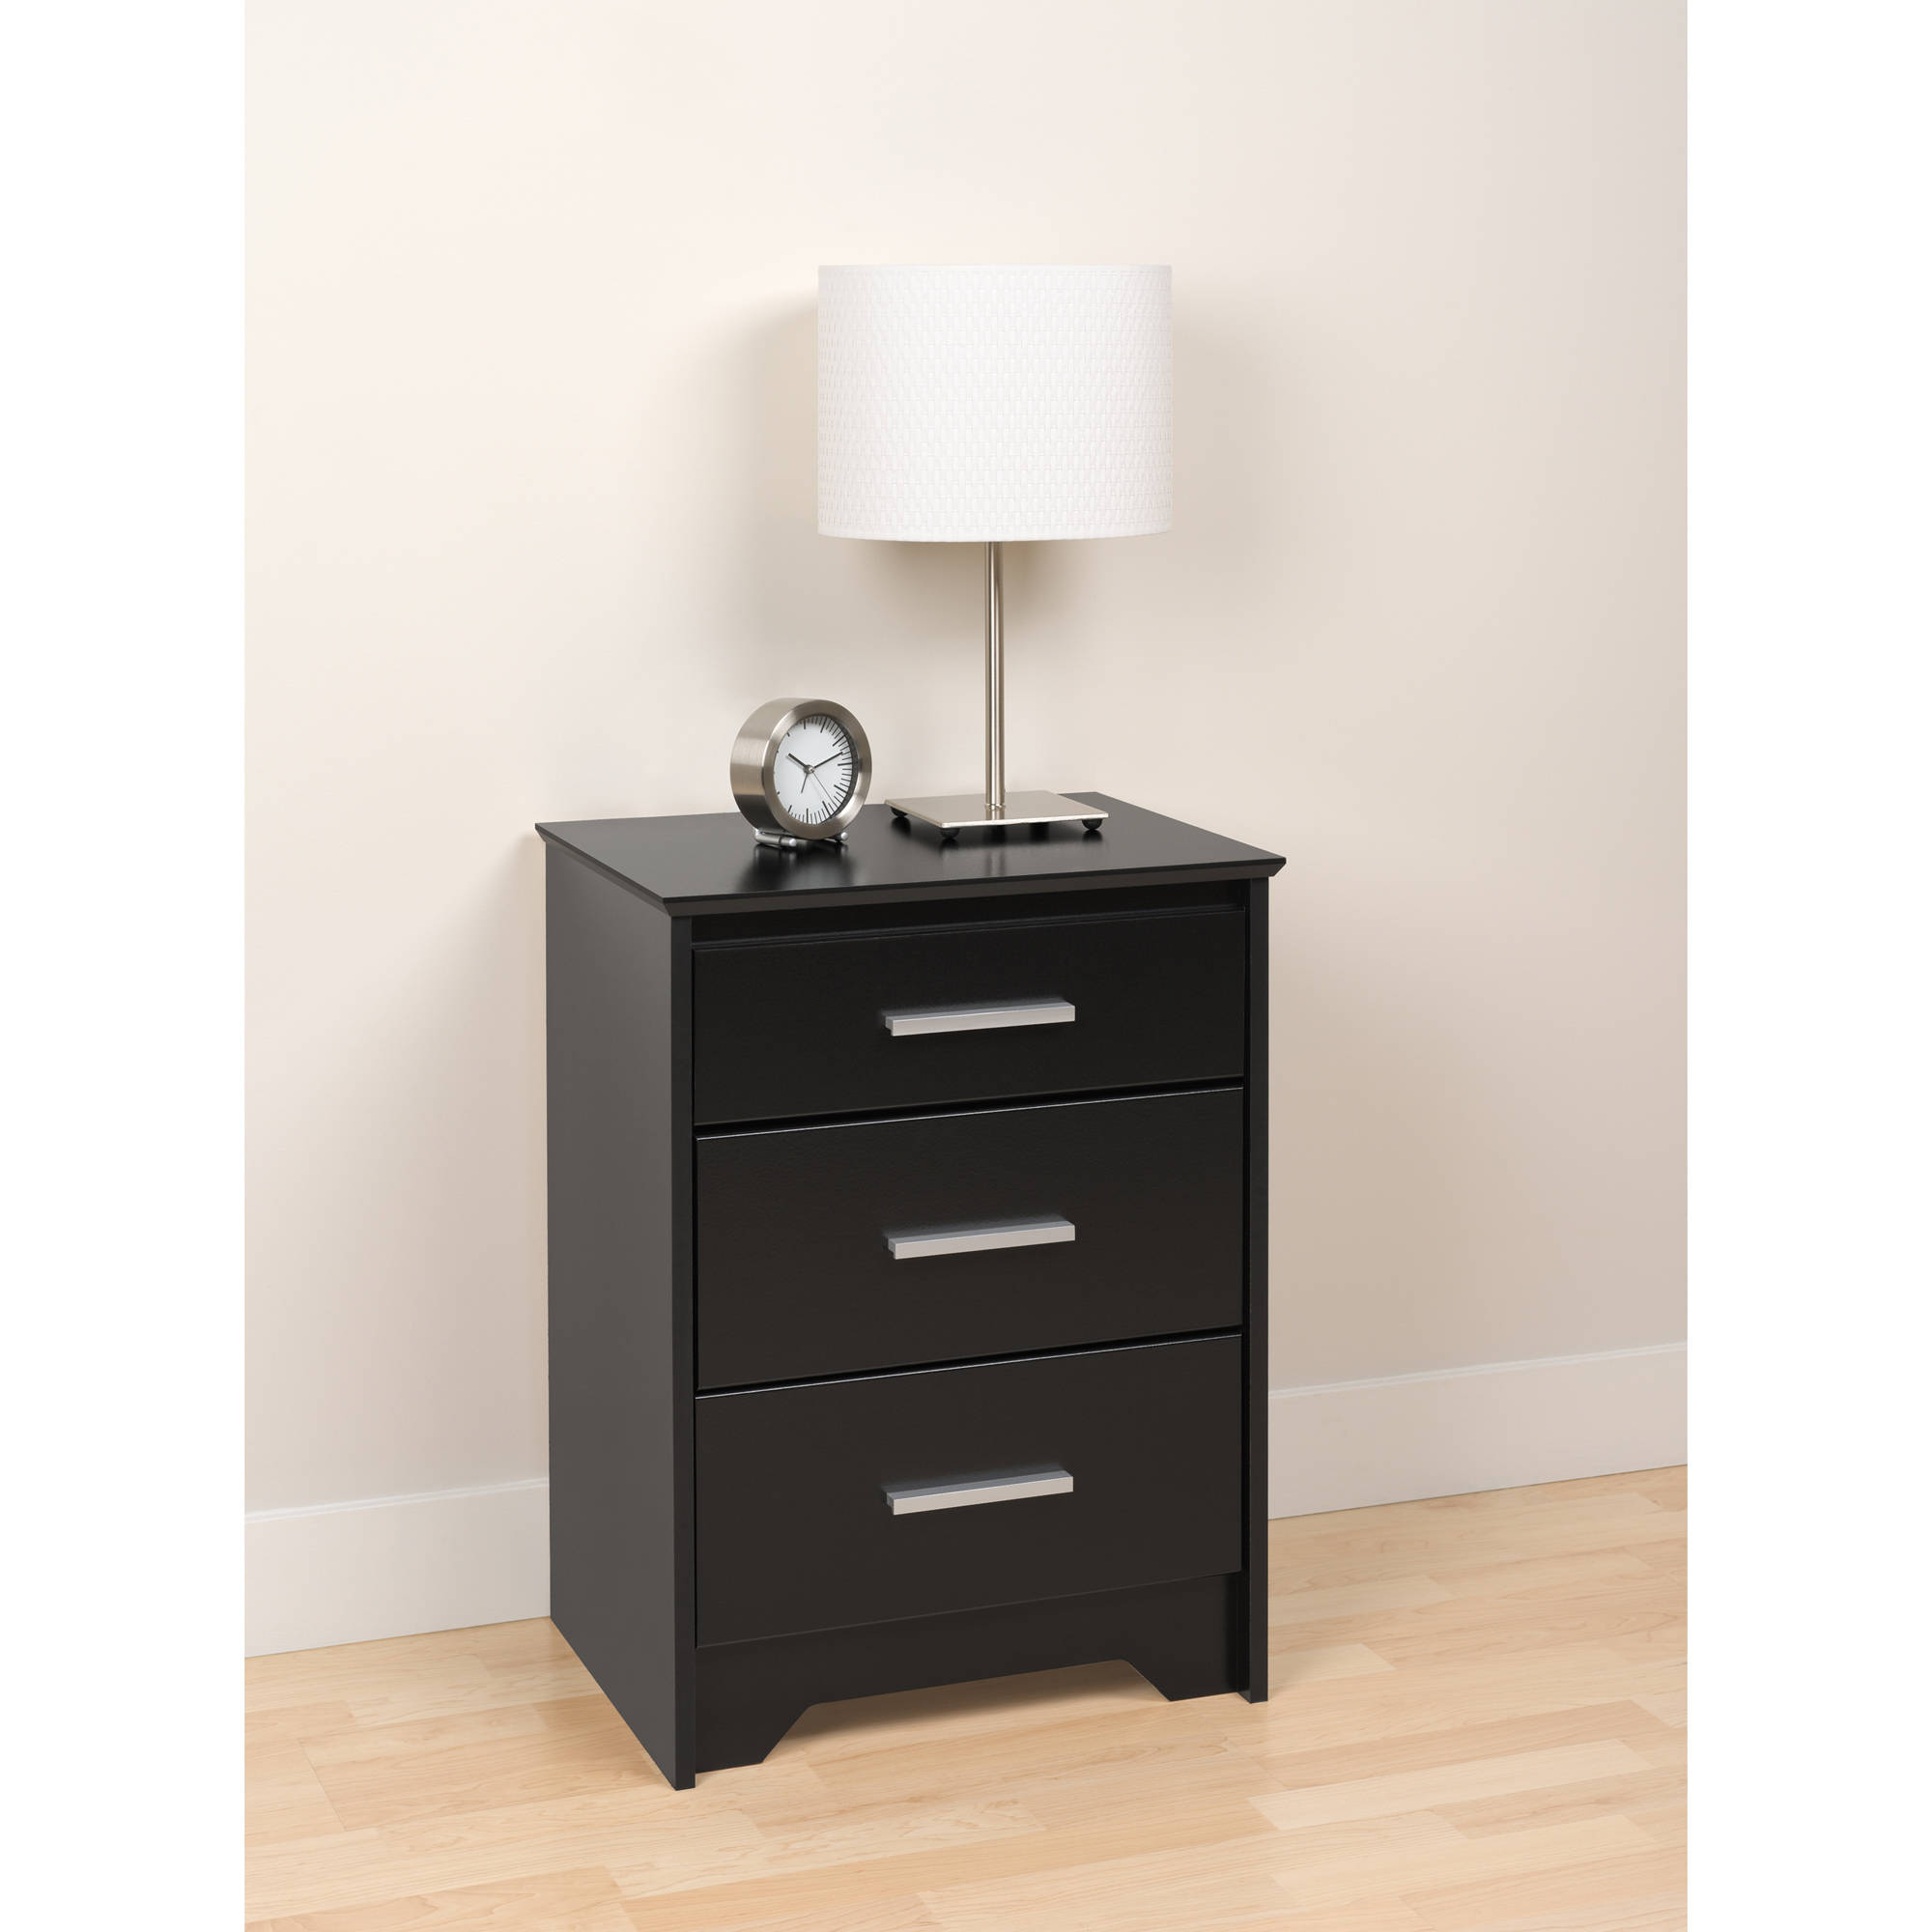 coffee white cheap dresser furniture table dressers nightstand drawers bedroom tall target nightstands luxury chest black drawer of amusing home